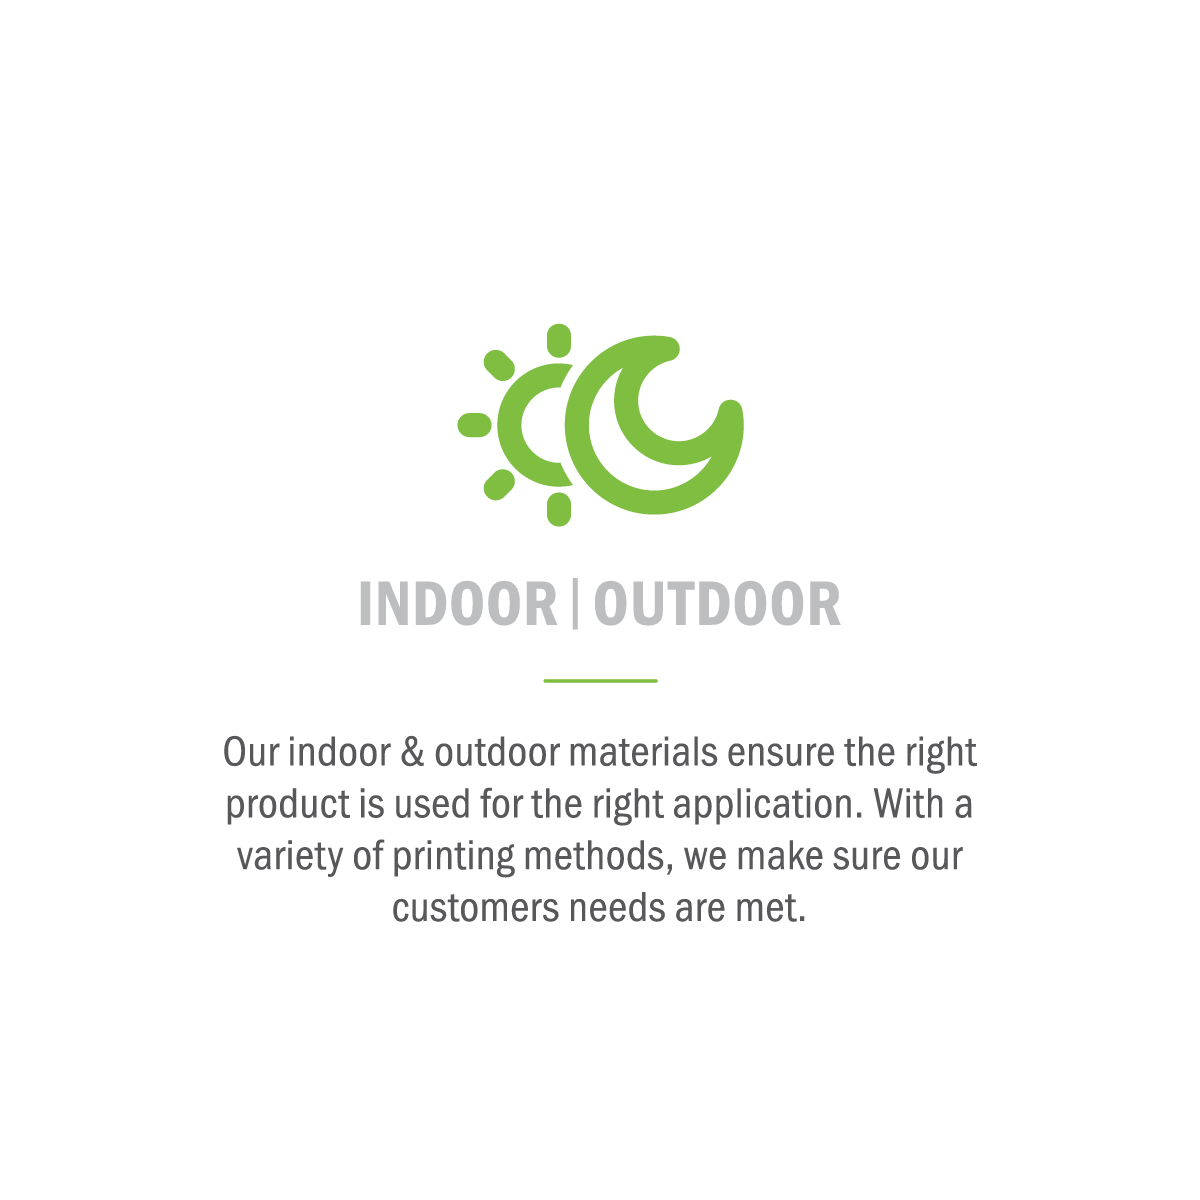 Indoor-Outdoor-Widget